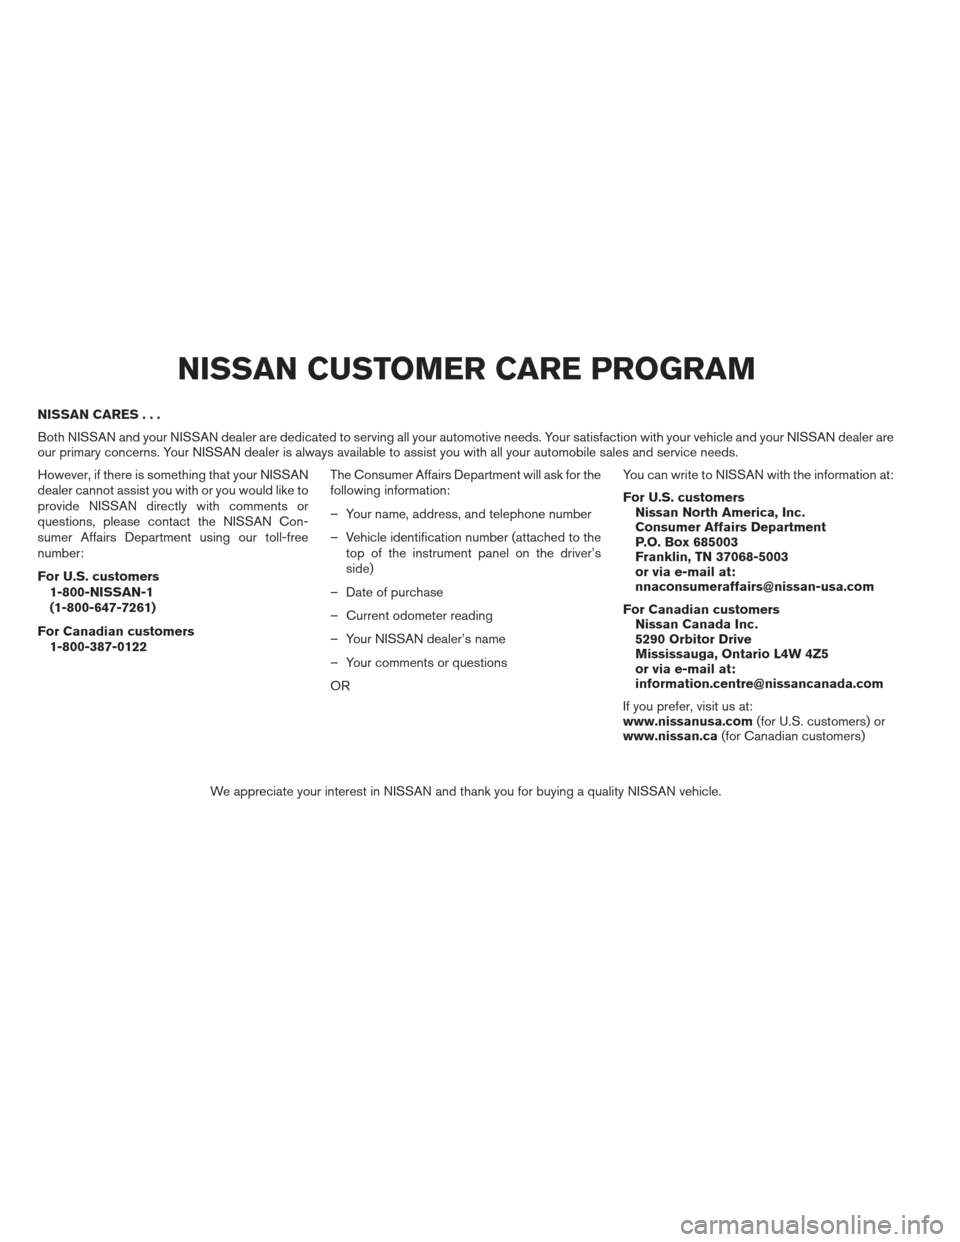 NISSAN MAXIMA 2013 A35 / 7.G Owners Manual NISSAN CARES... Both NISSAN and your NISSAN dealer are dedicated to serving all your automotive needs. Your satisfaction with your vehicle and your NISSAN dealer are our primary concerns. Your NISSAN